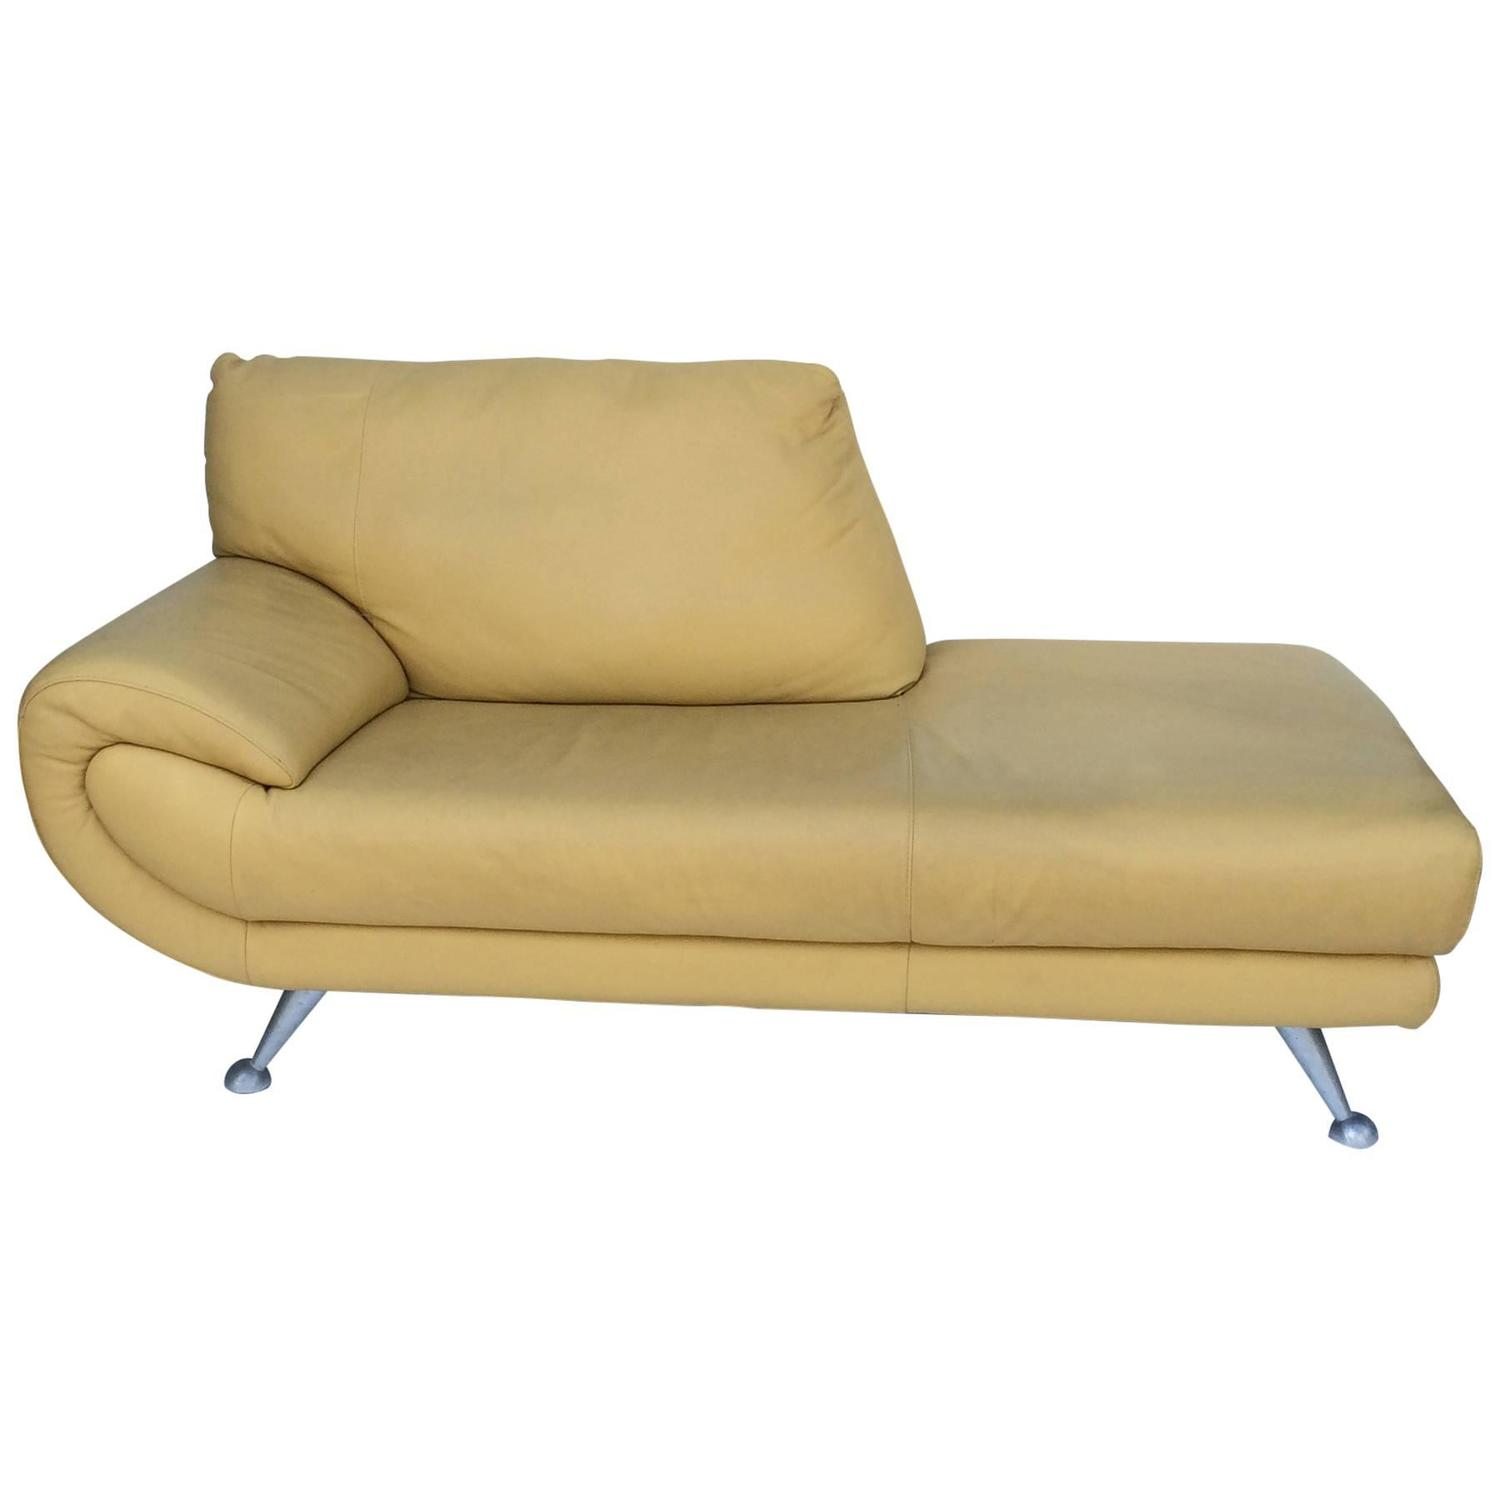 Nicoletti leather chaise lounge for sale at 1stdibs for Chaise furniture sale